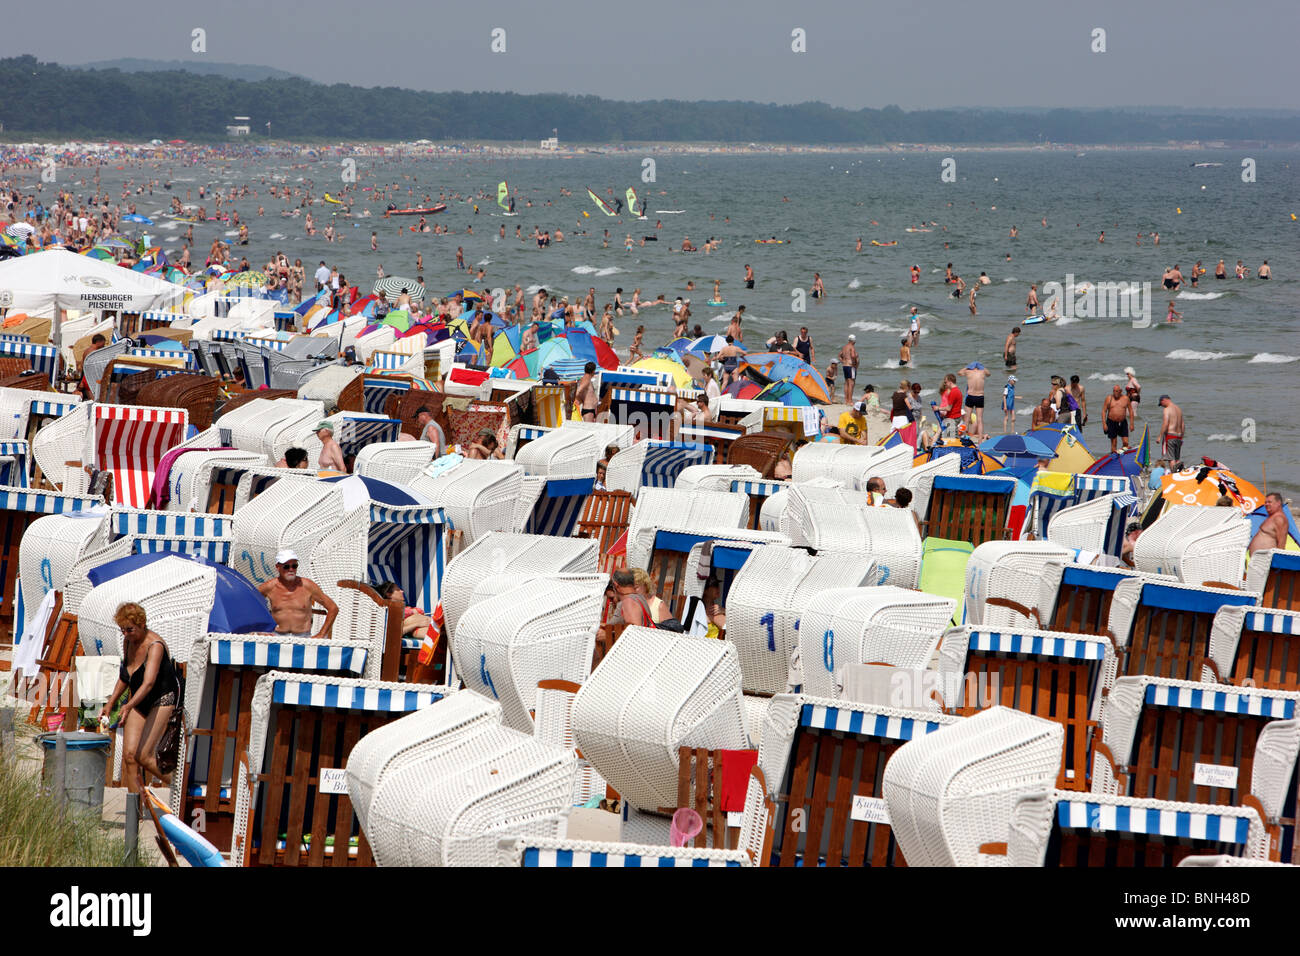 Seaside resort Binz on the island of Ruegen, northeast Germany at the baltic sea. Summertime, full beaches. - Stock Image